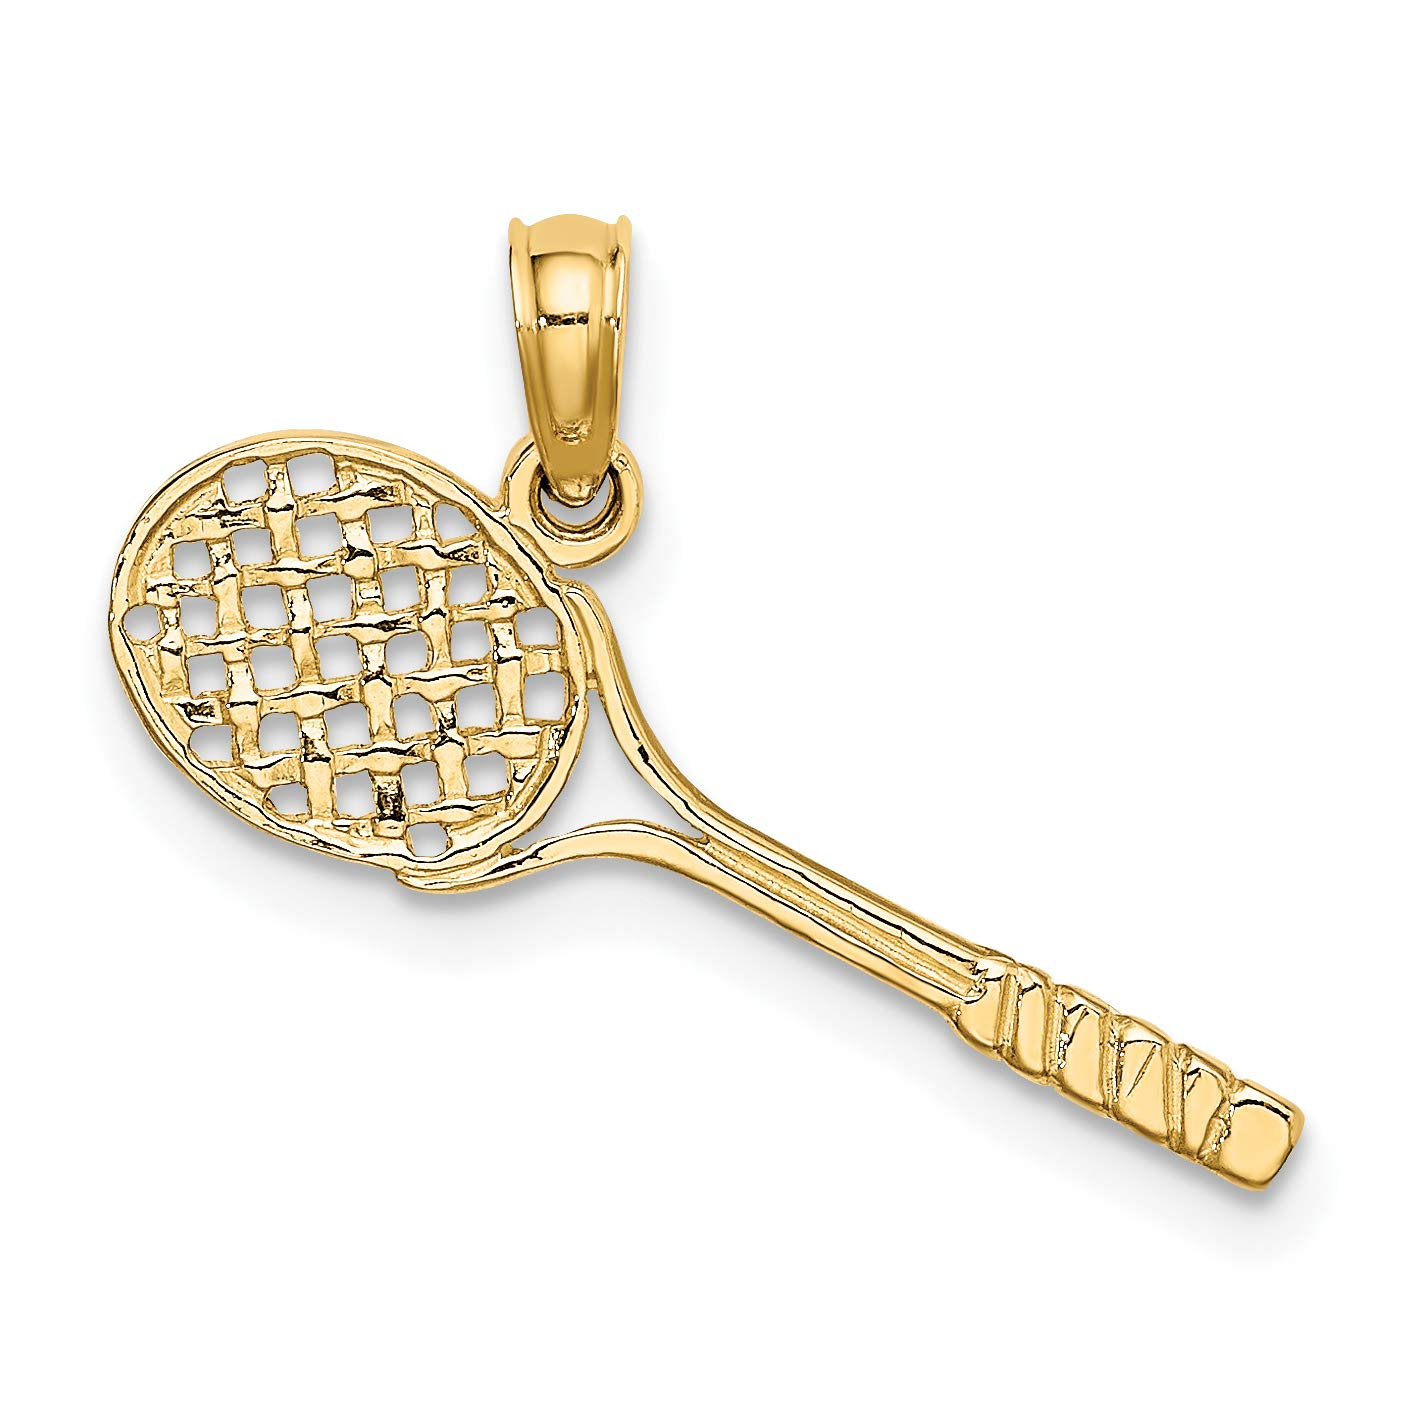 Solid 14k Yellow Gold Polished Tennis Racquet Shaped Pendant 7x23mm